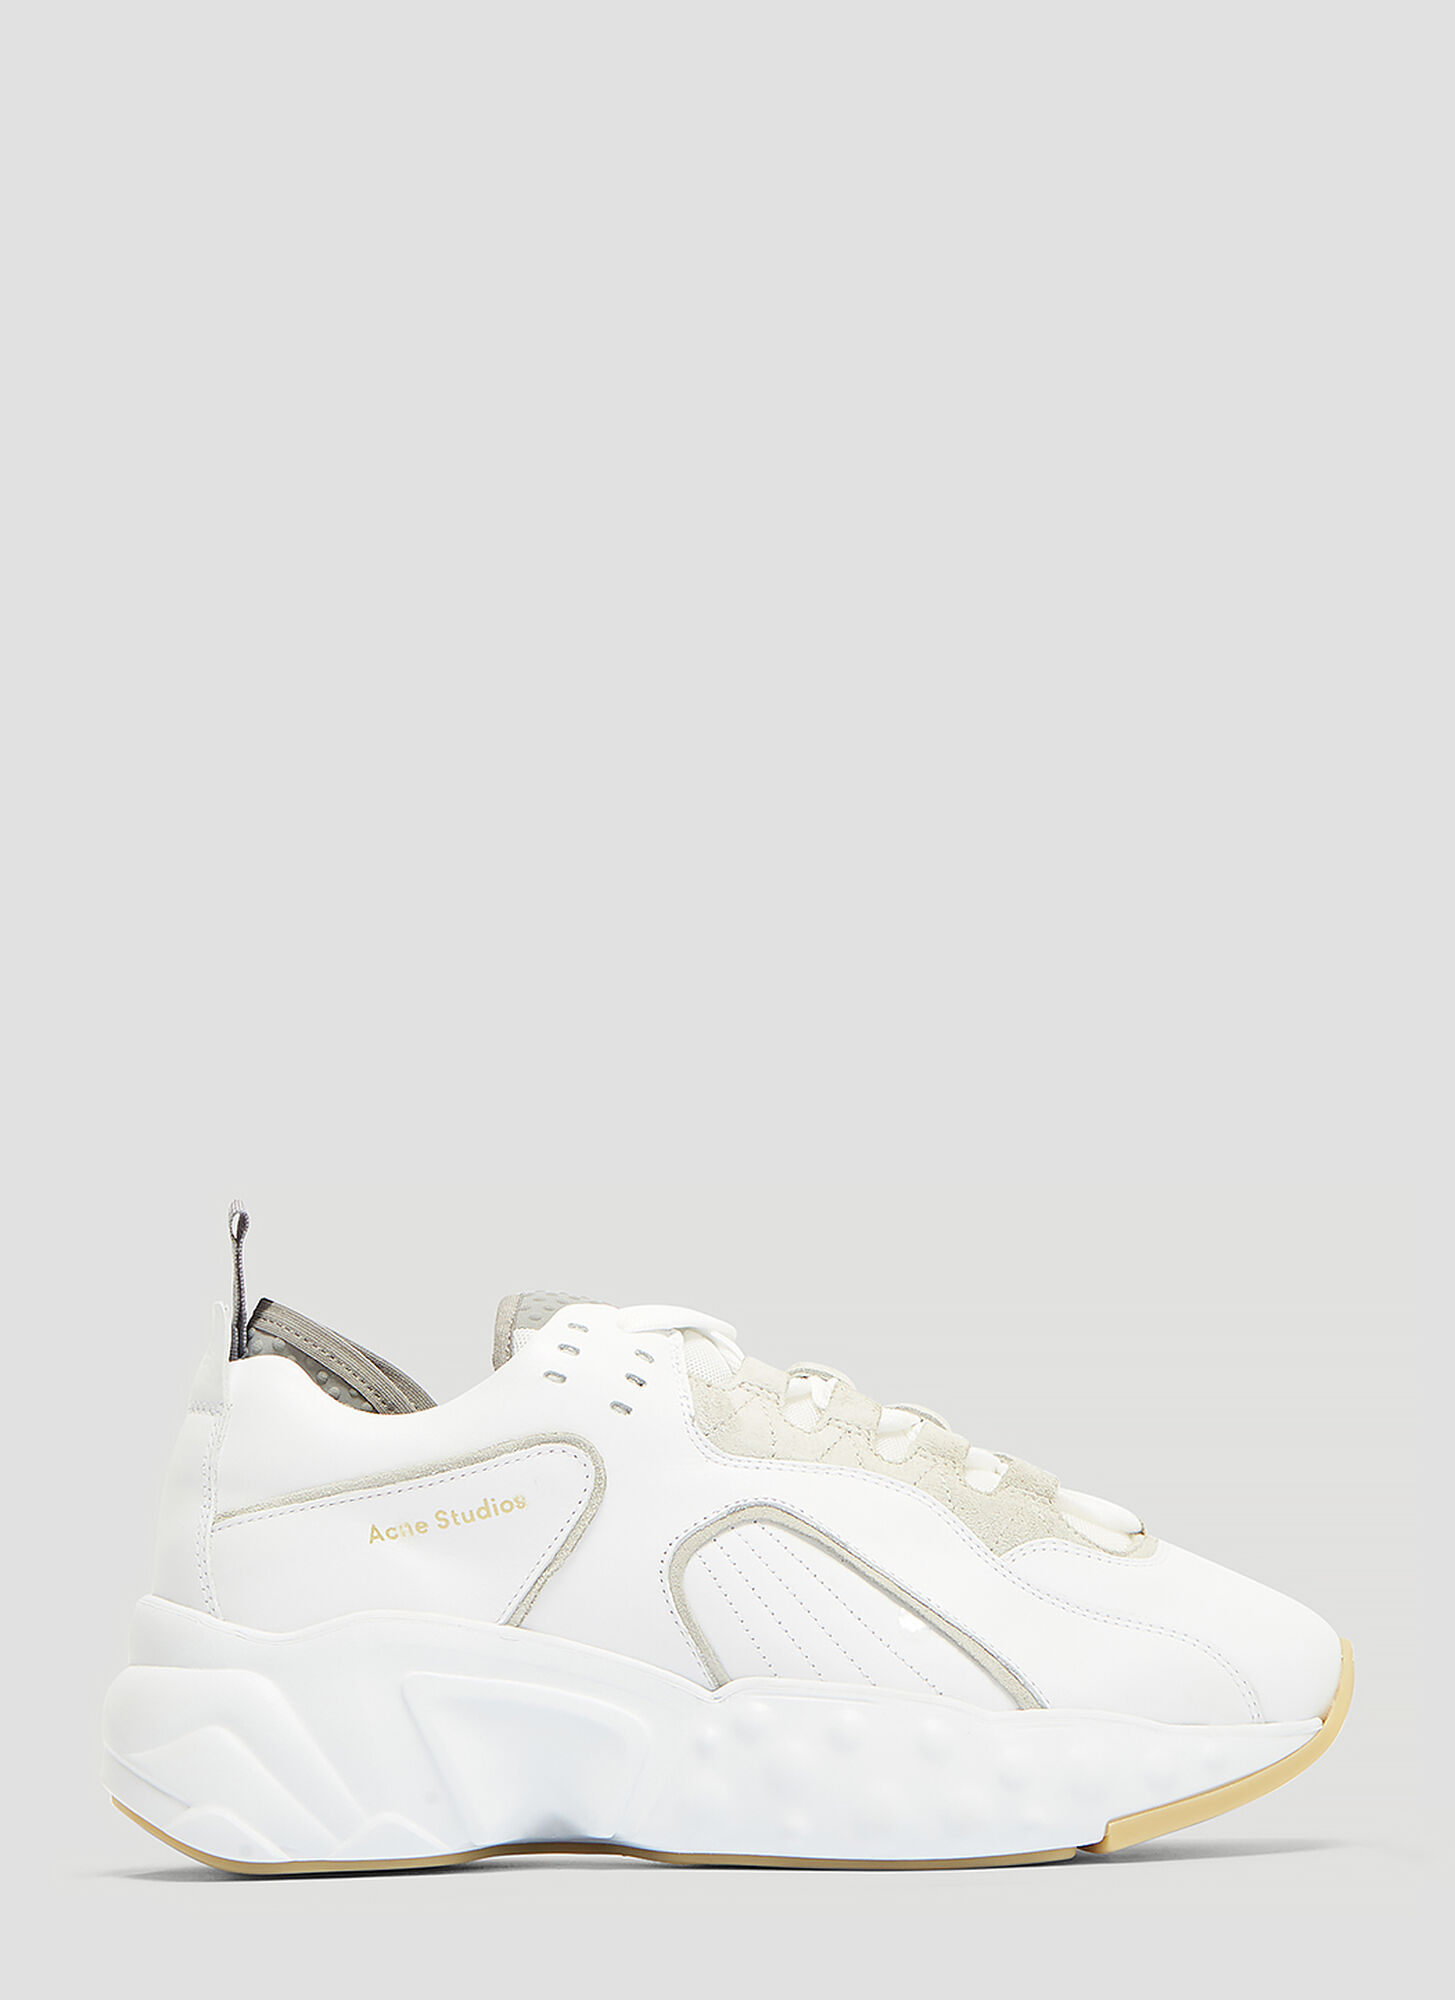 Acne Studios Technical Leather Sneakers in White